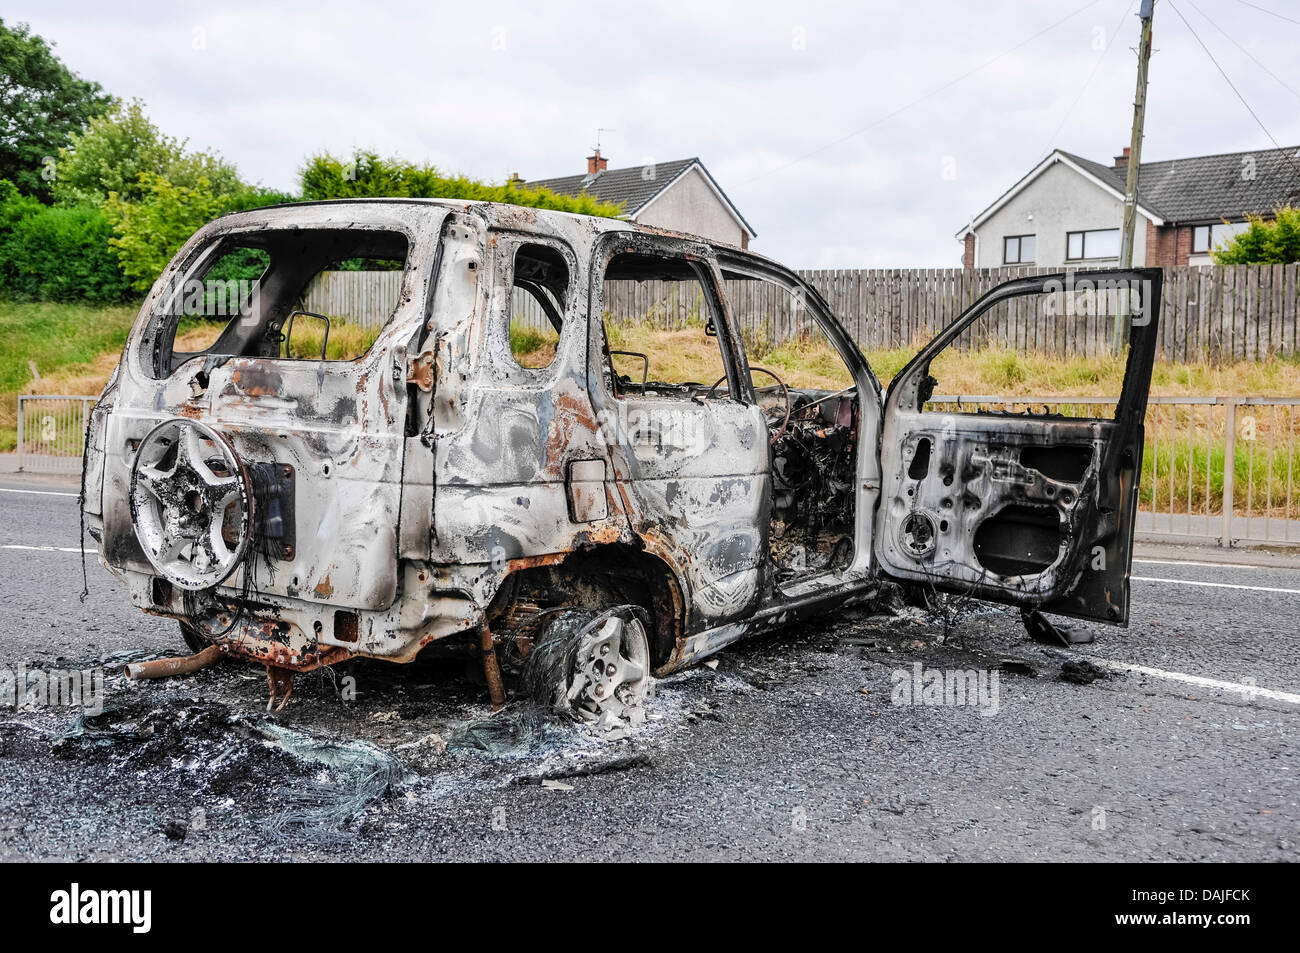 Newtownabbey, Northern Ireland. 15th July 2013 - A burnt out car blocks a major road following riots in Newtownabbey - Stock Image